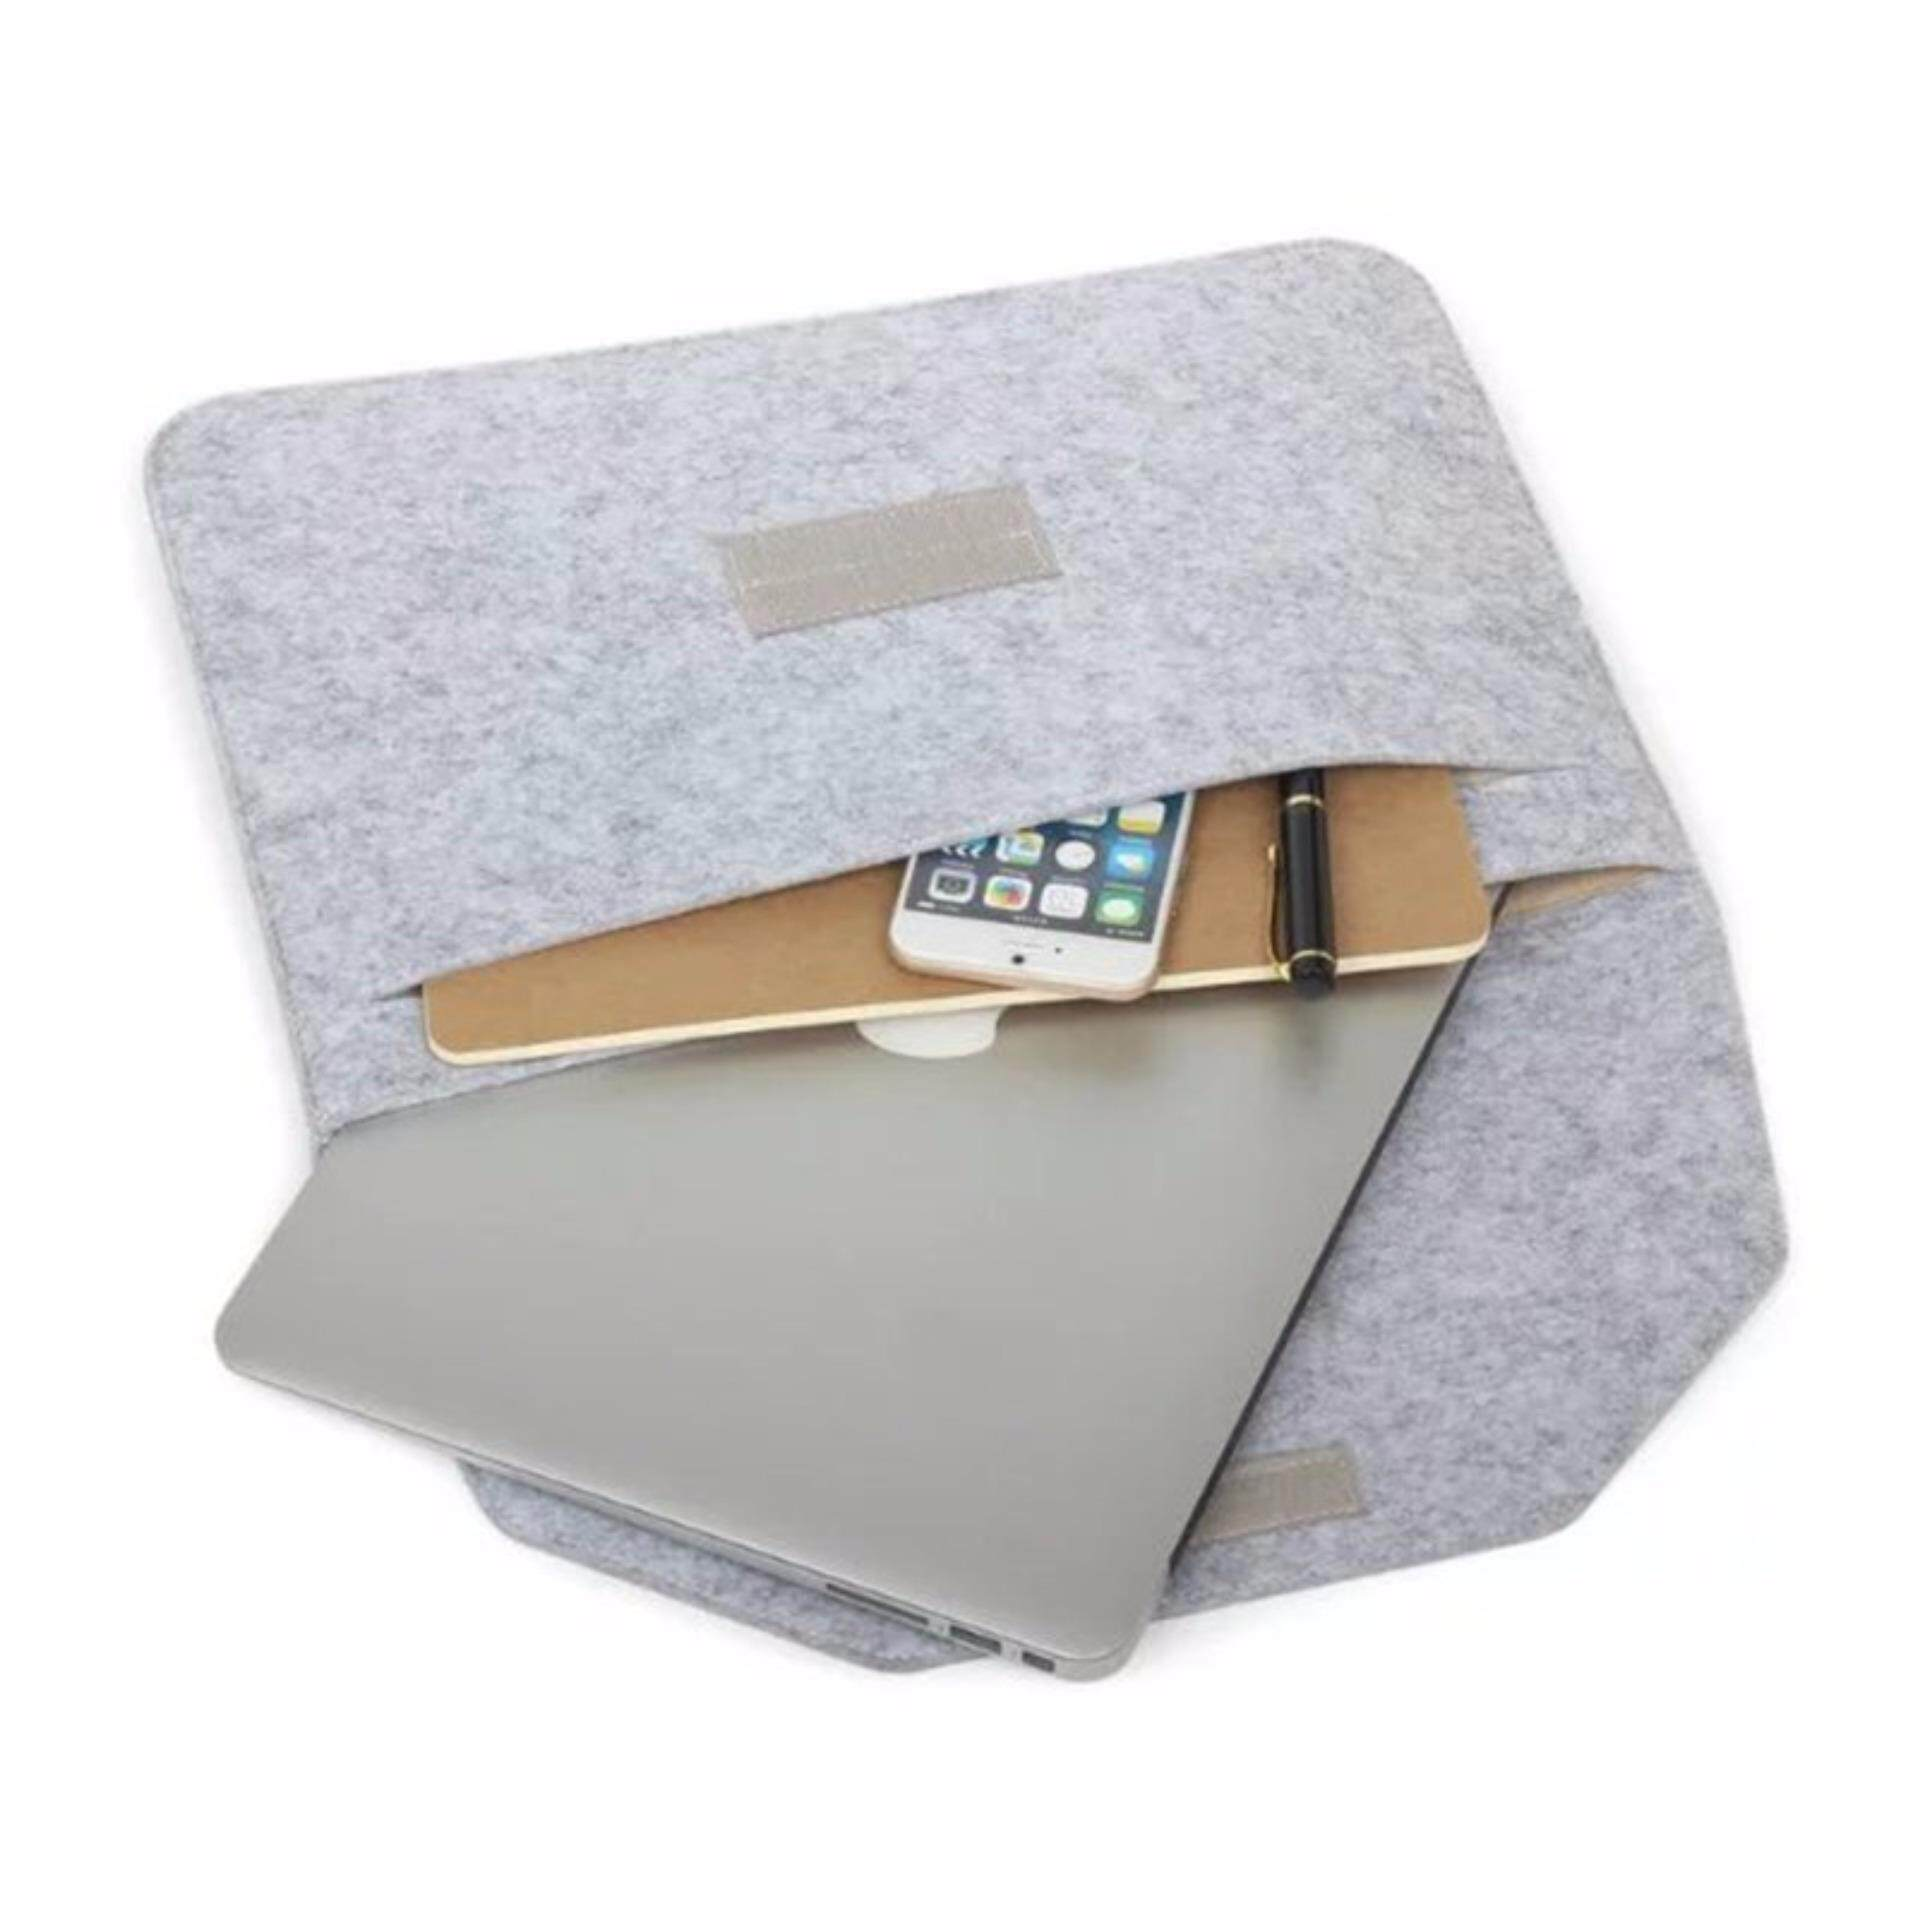 Daftar Harga Laptop Macbook Air 11 Quot Di Lazada Hargaupdate Tas Sleeve Softcase New Pro Retina 116 154 Inch Jual Fashion Soft Bag Case For Apple 13quot Anti Scratch Cover